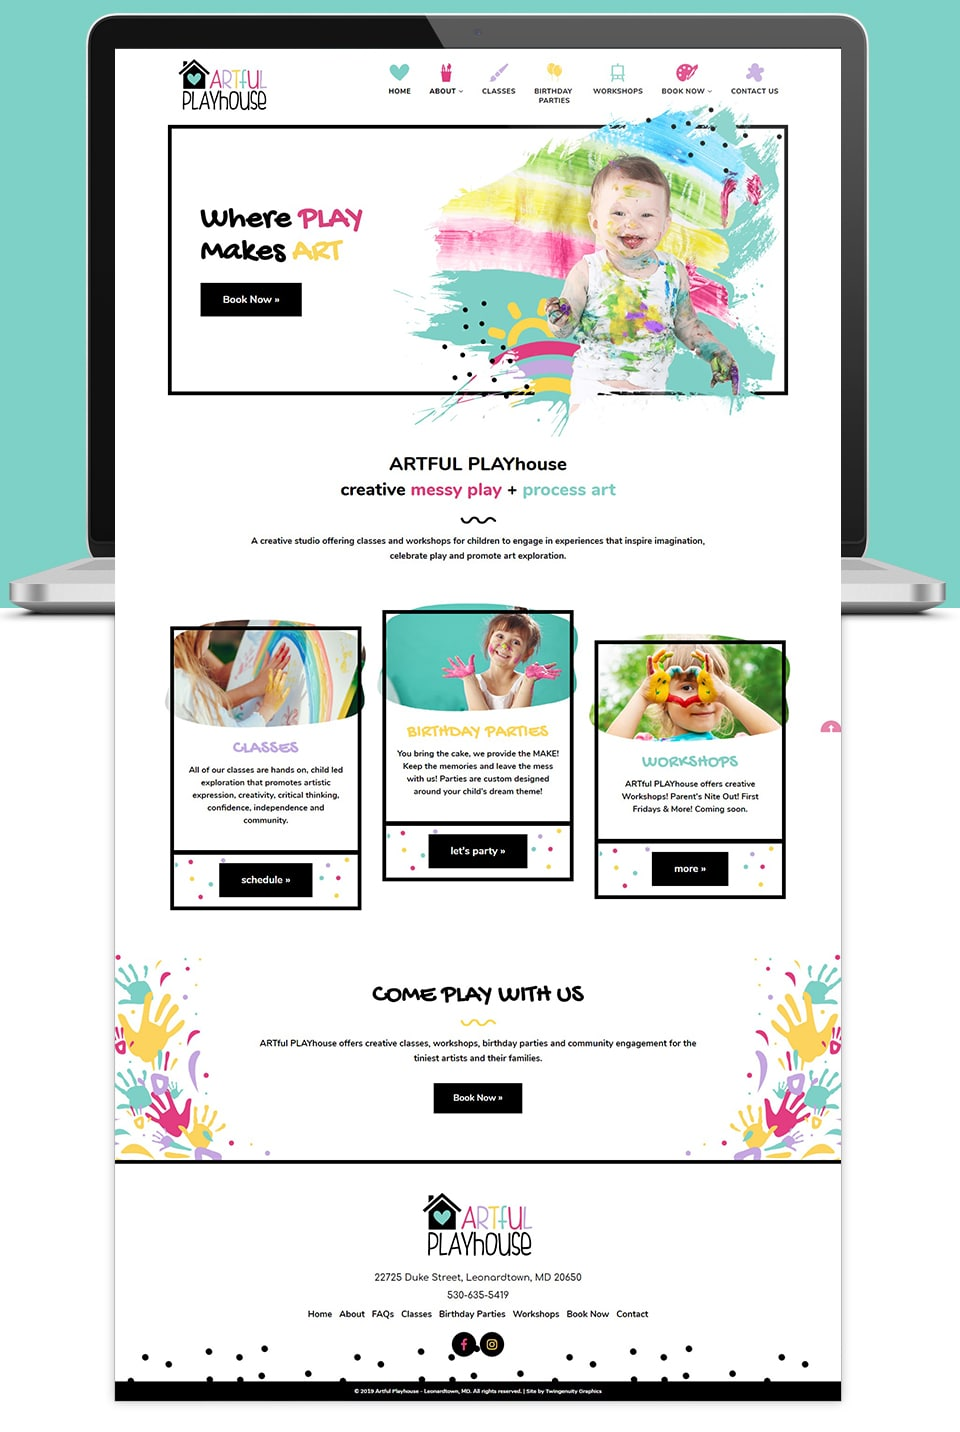 artful playhouse website design in wordpress